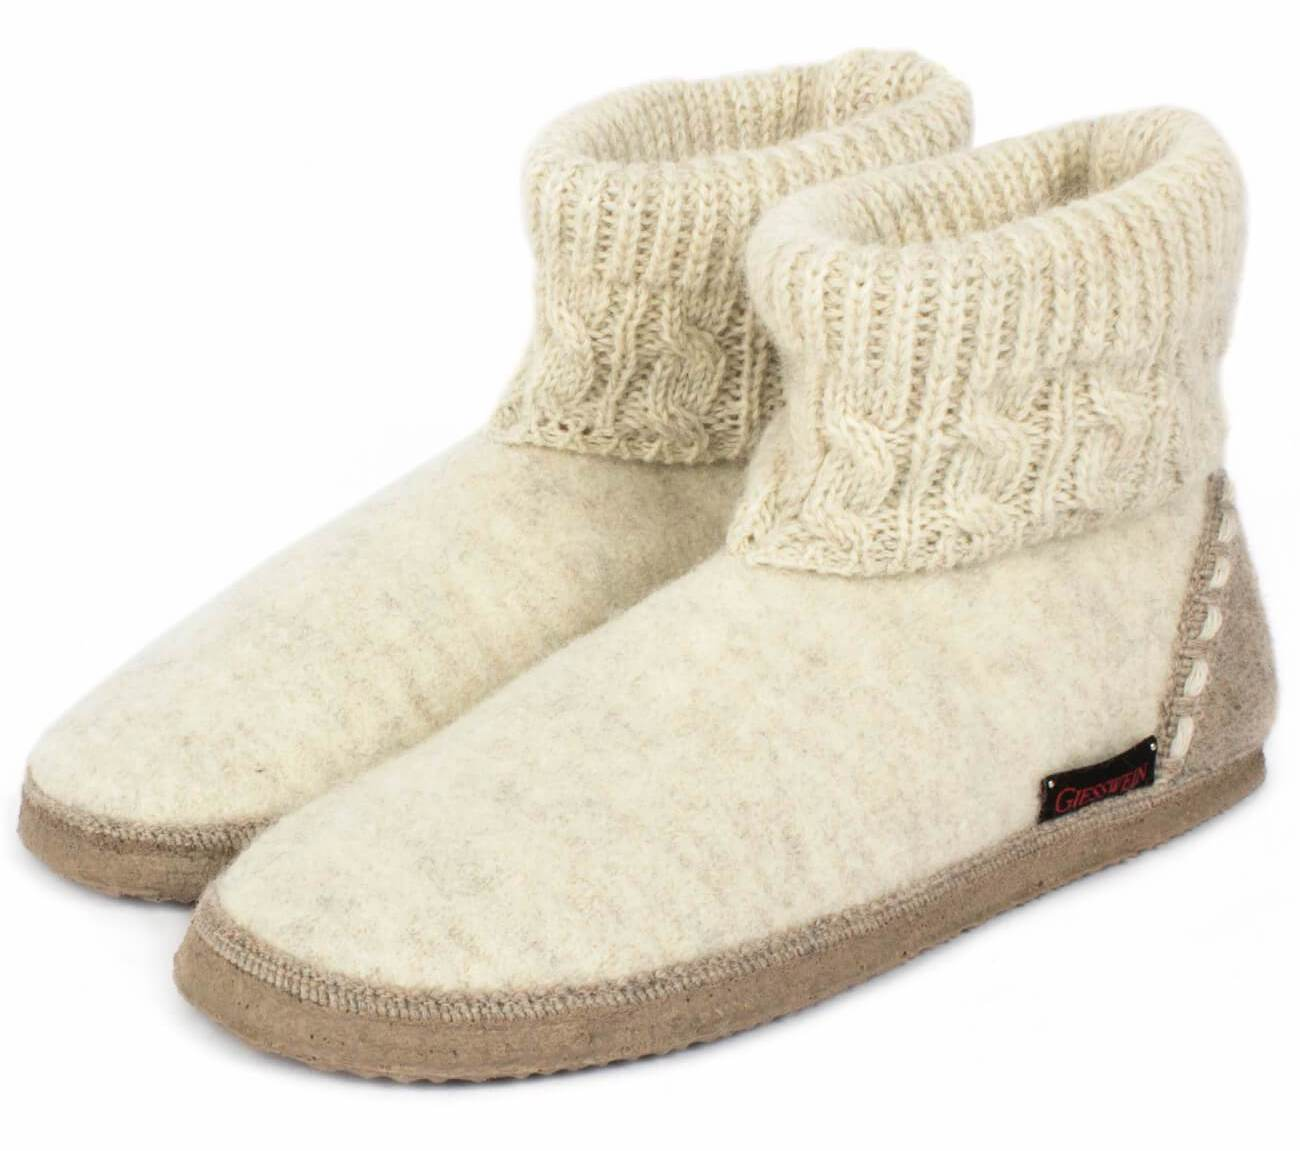 Cozy barefoot shoes for women